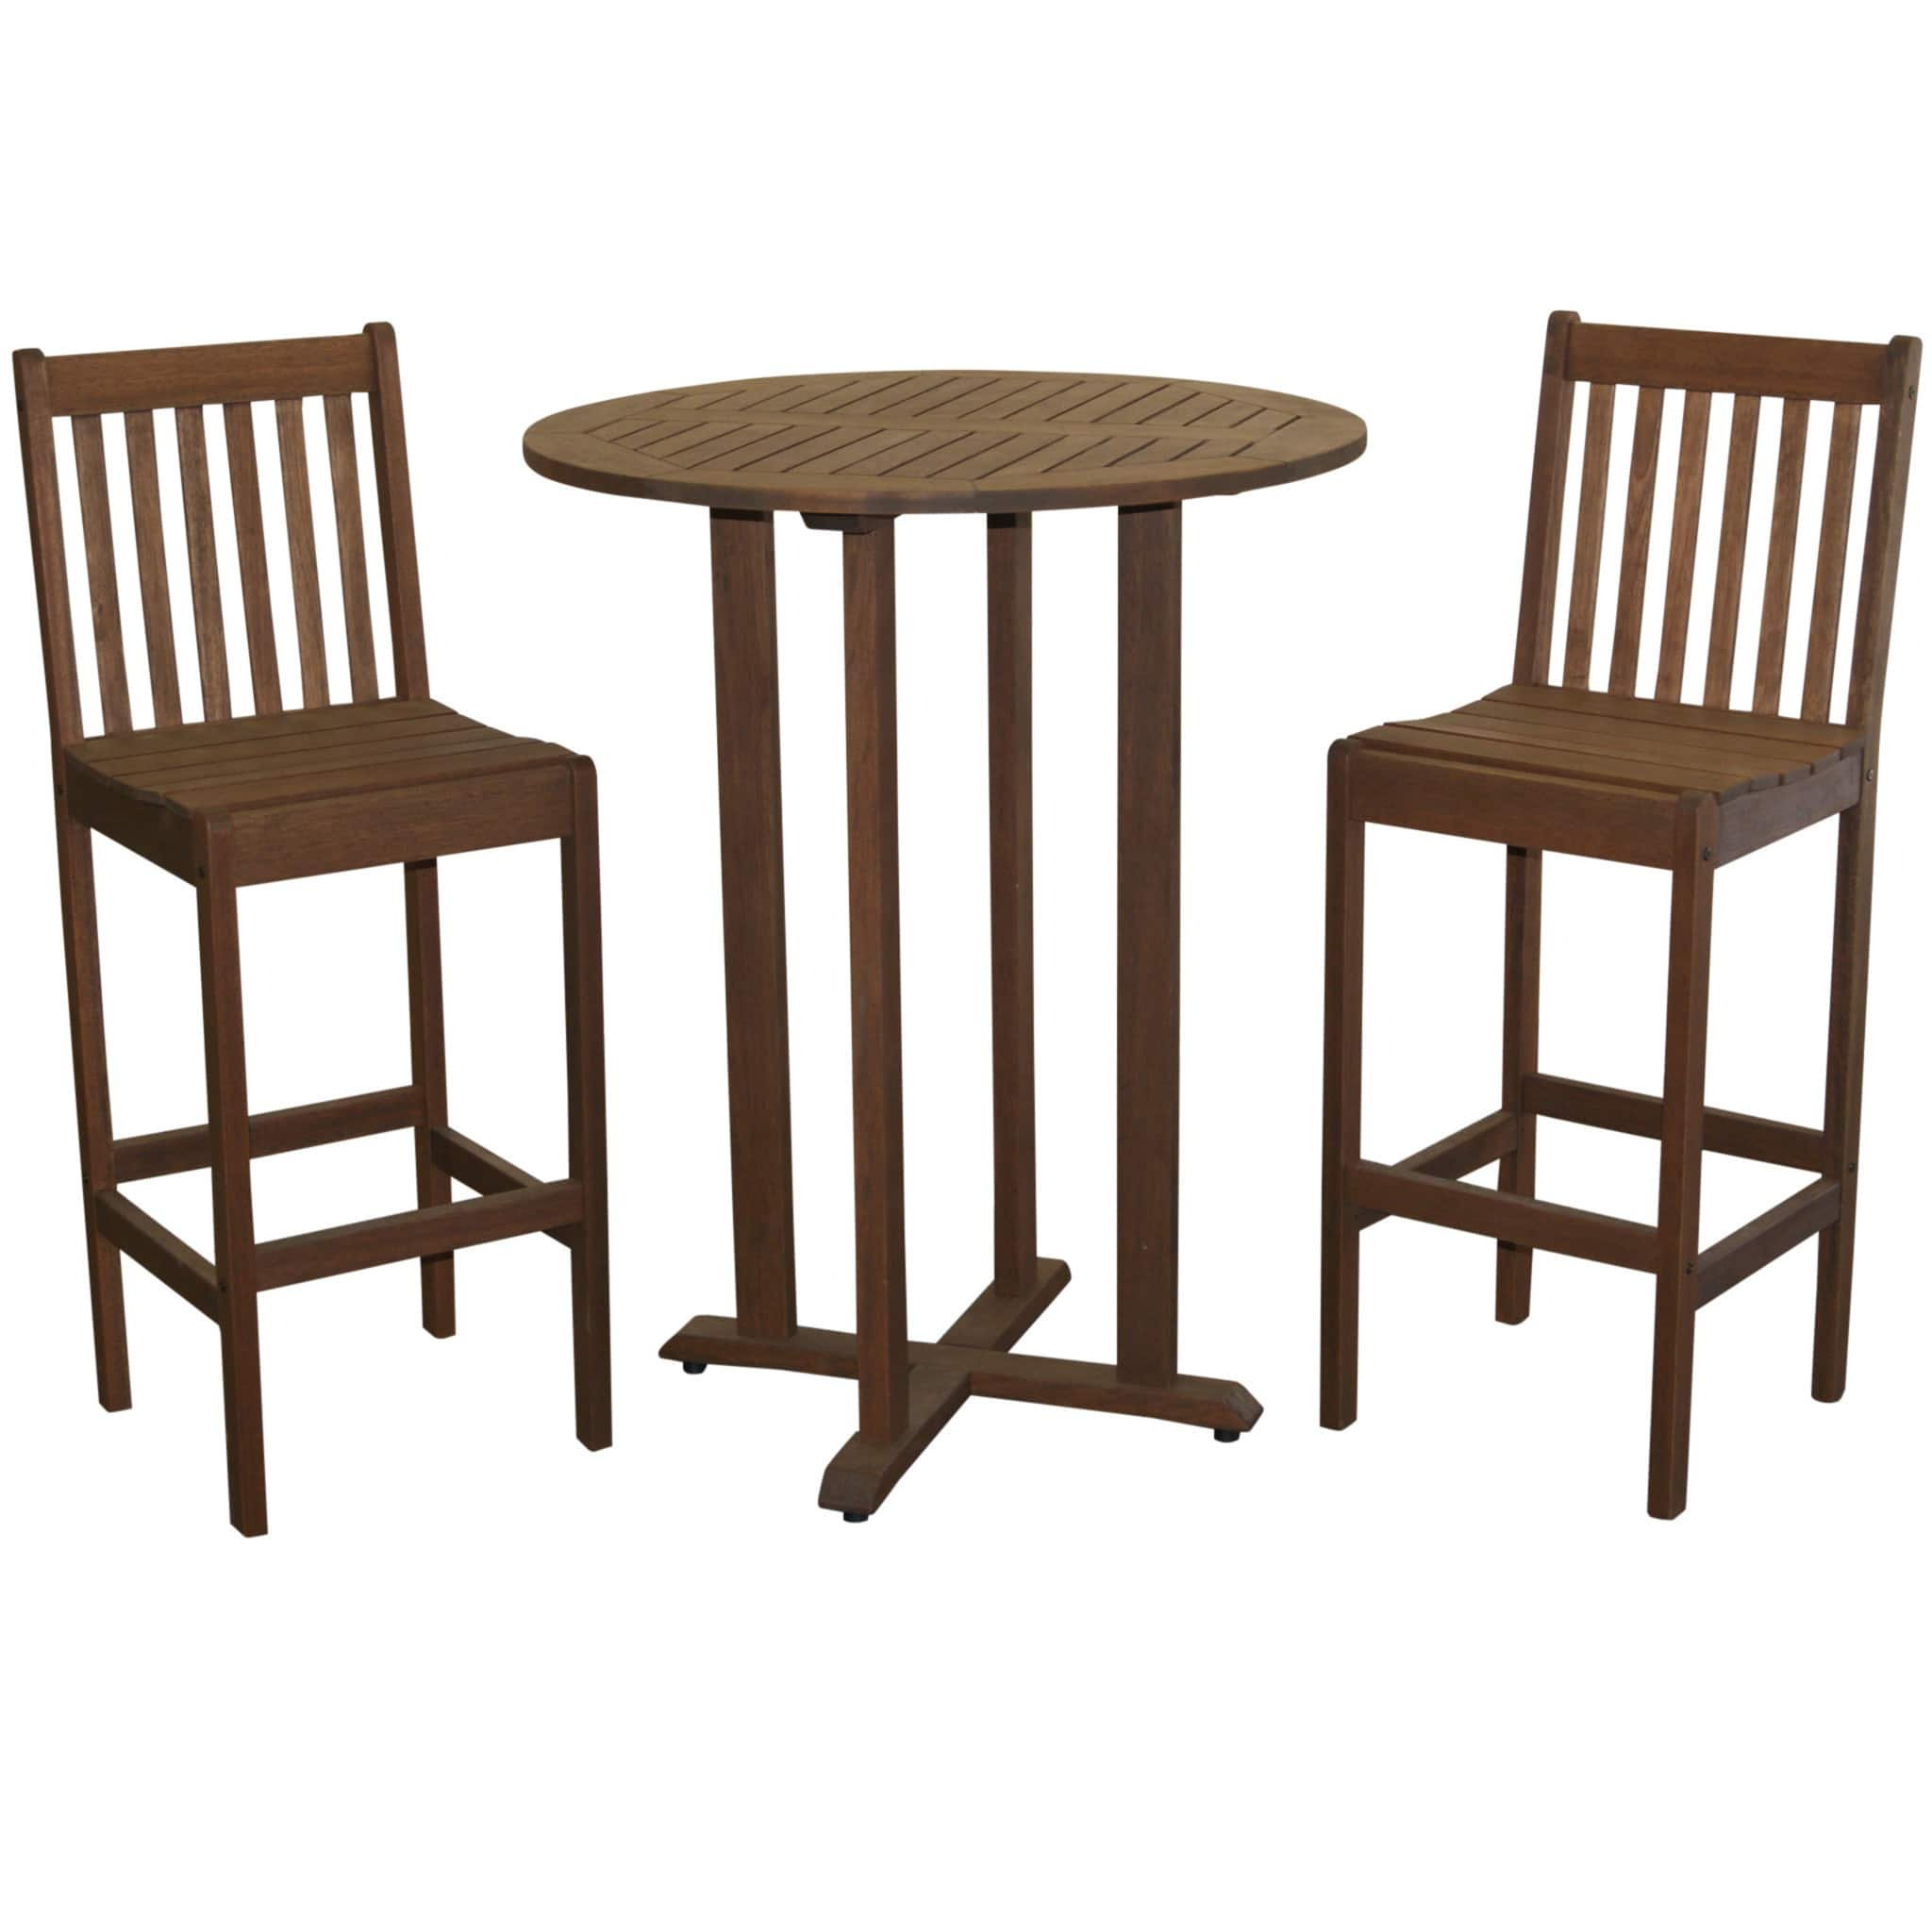 cf462a727d1 Get Quotations · Timbo Torino Hardwood Outdoor Patio Bar Bistro Set with a  Bar Bistro Table   2 Bar